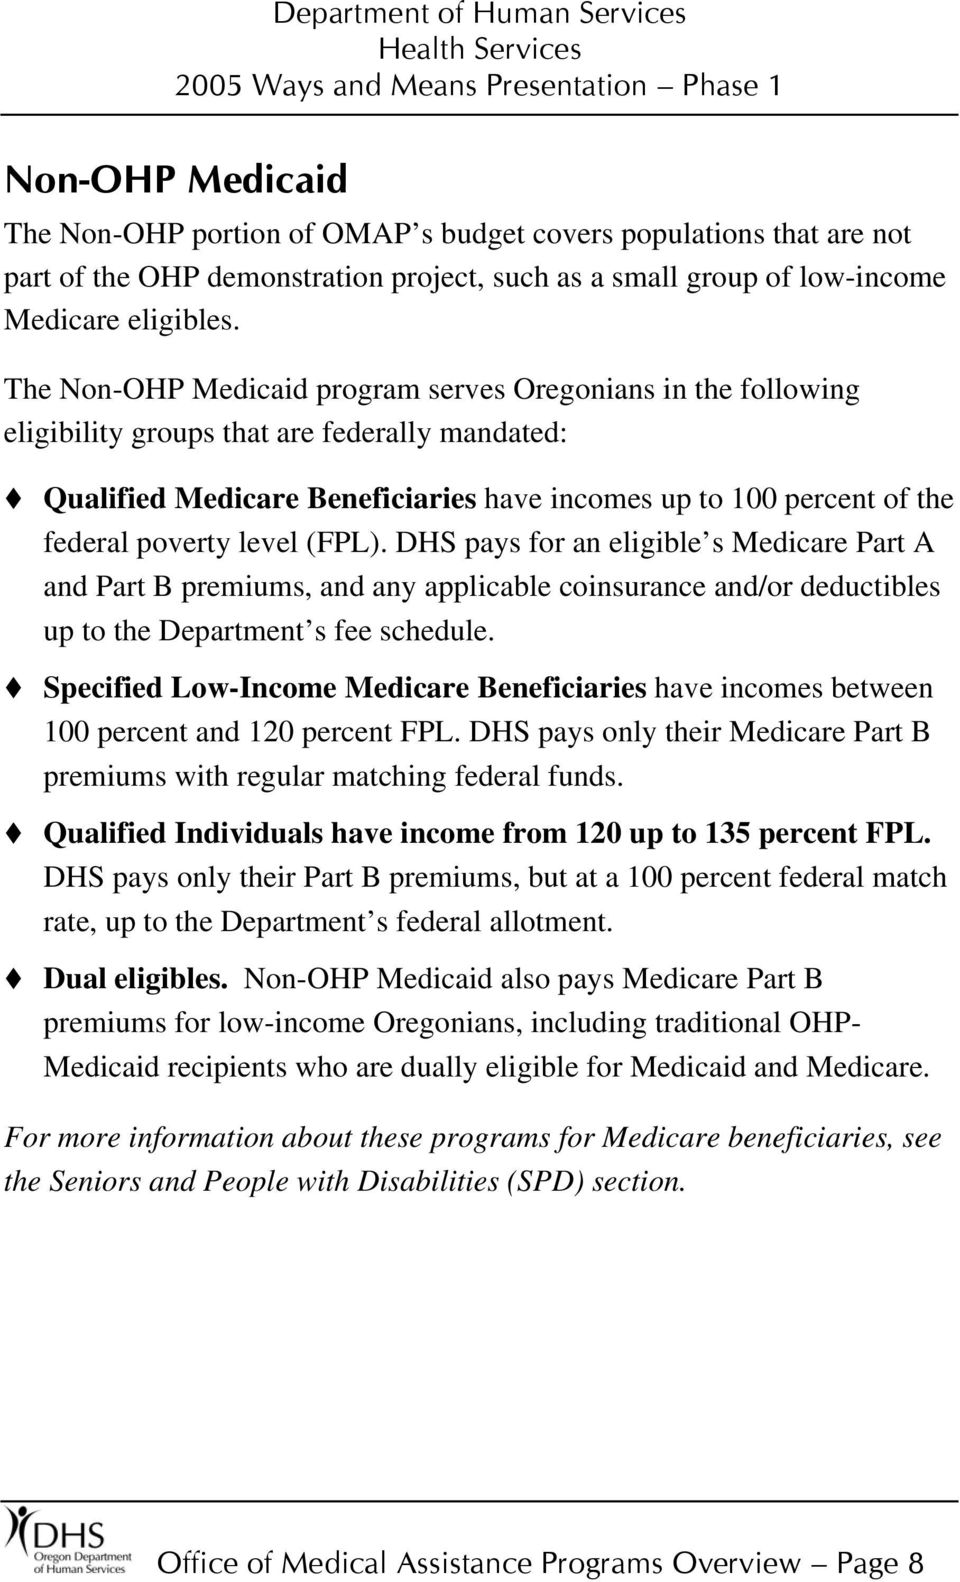 level (FPL). DHS pays for an eligible s Medicare Part A and Part B premiums, and any applicable coinsurance and/or deductibles up to the Department s fee schedule.